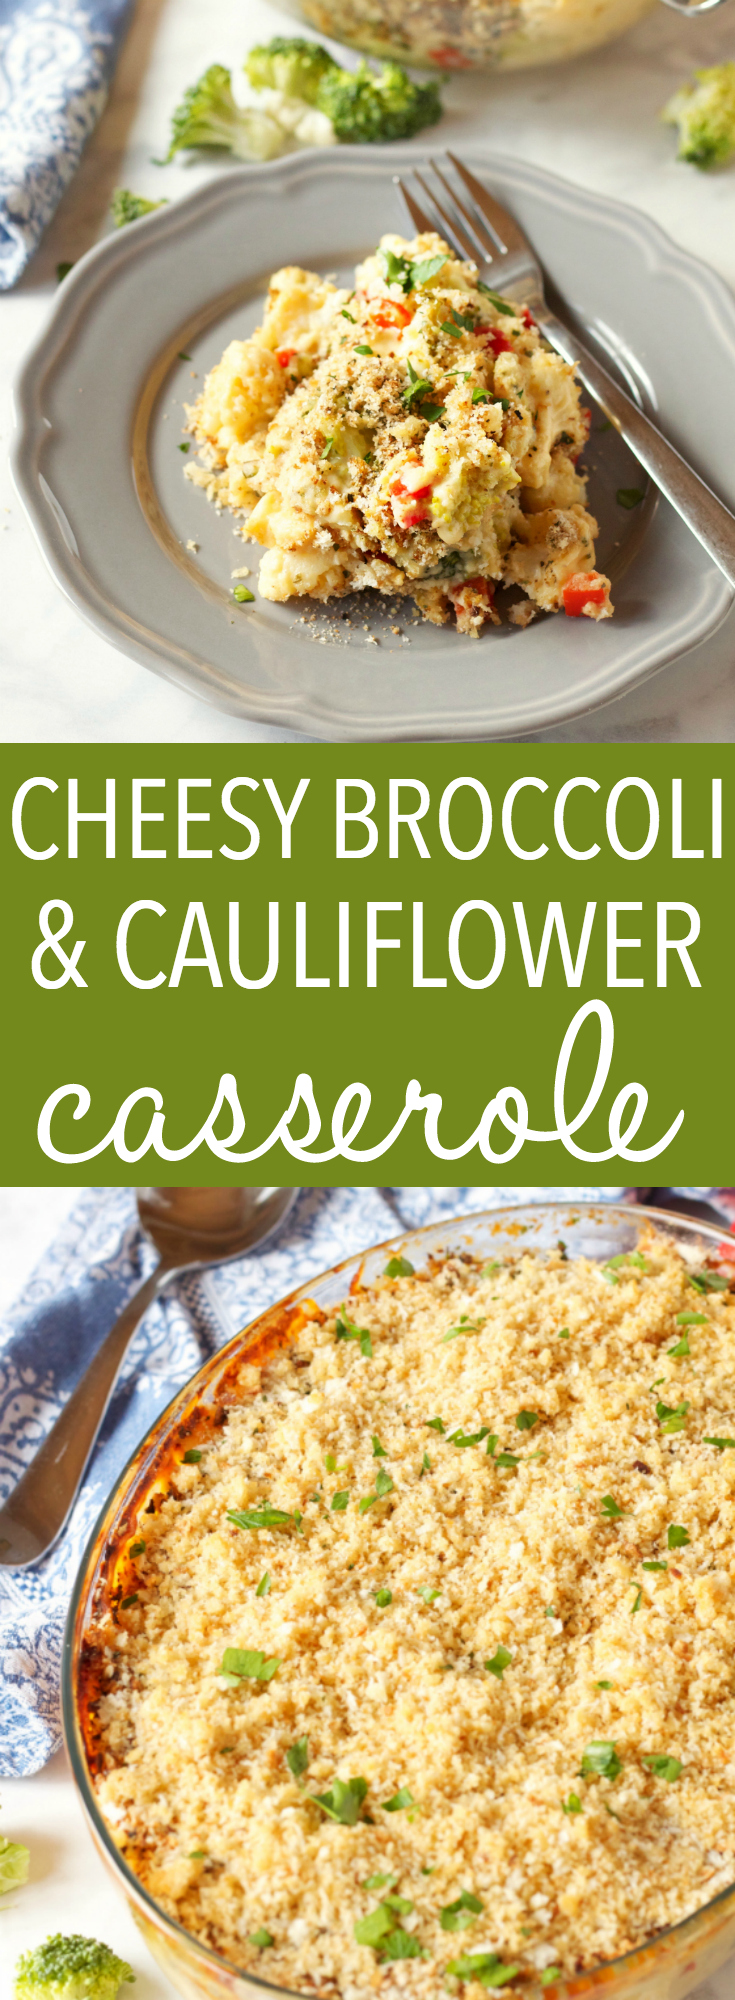 This Cheesy Broccoli Cauliflower Casserole is the perfect side dish for the holidays or any occasion! Made with tons of fresh veggies and an easy homemade cheese sauce, and baked to comfort food perfection! Recipe from thebusybaker.ca! #holidaysidedish #easysidedish #broccolicheesecasserole via @busybakerblog